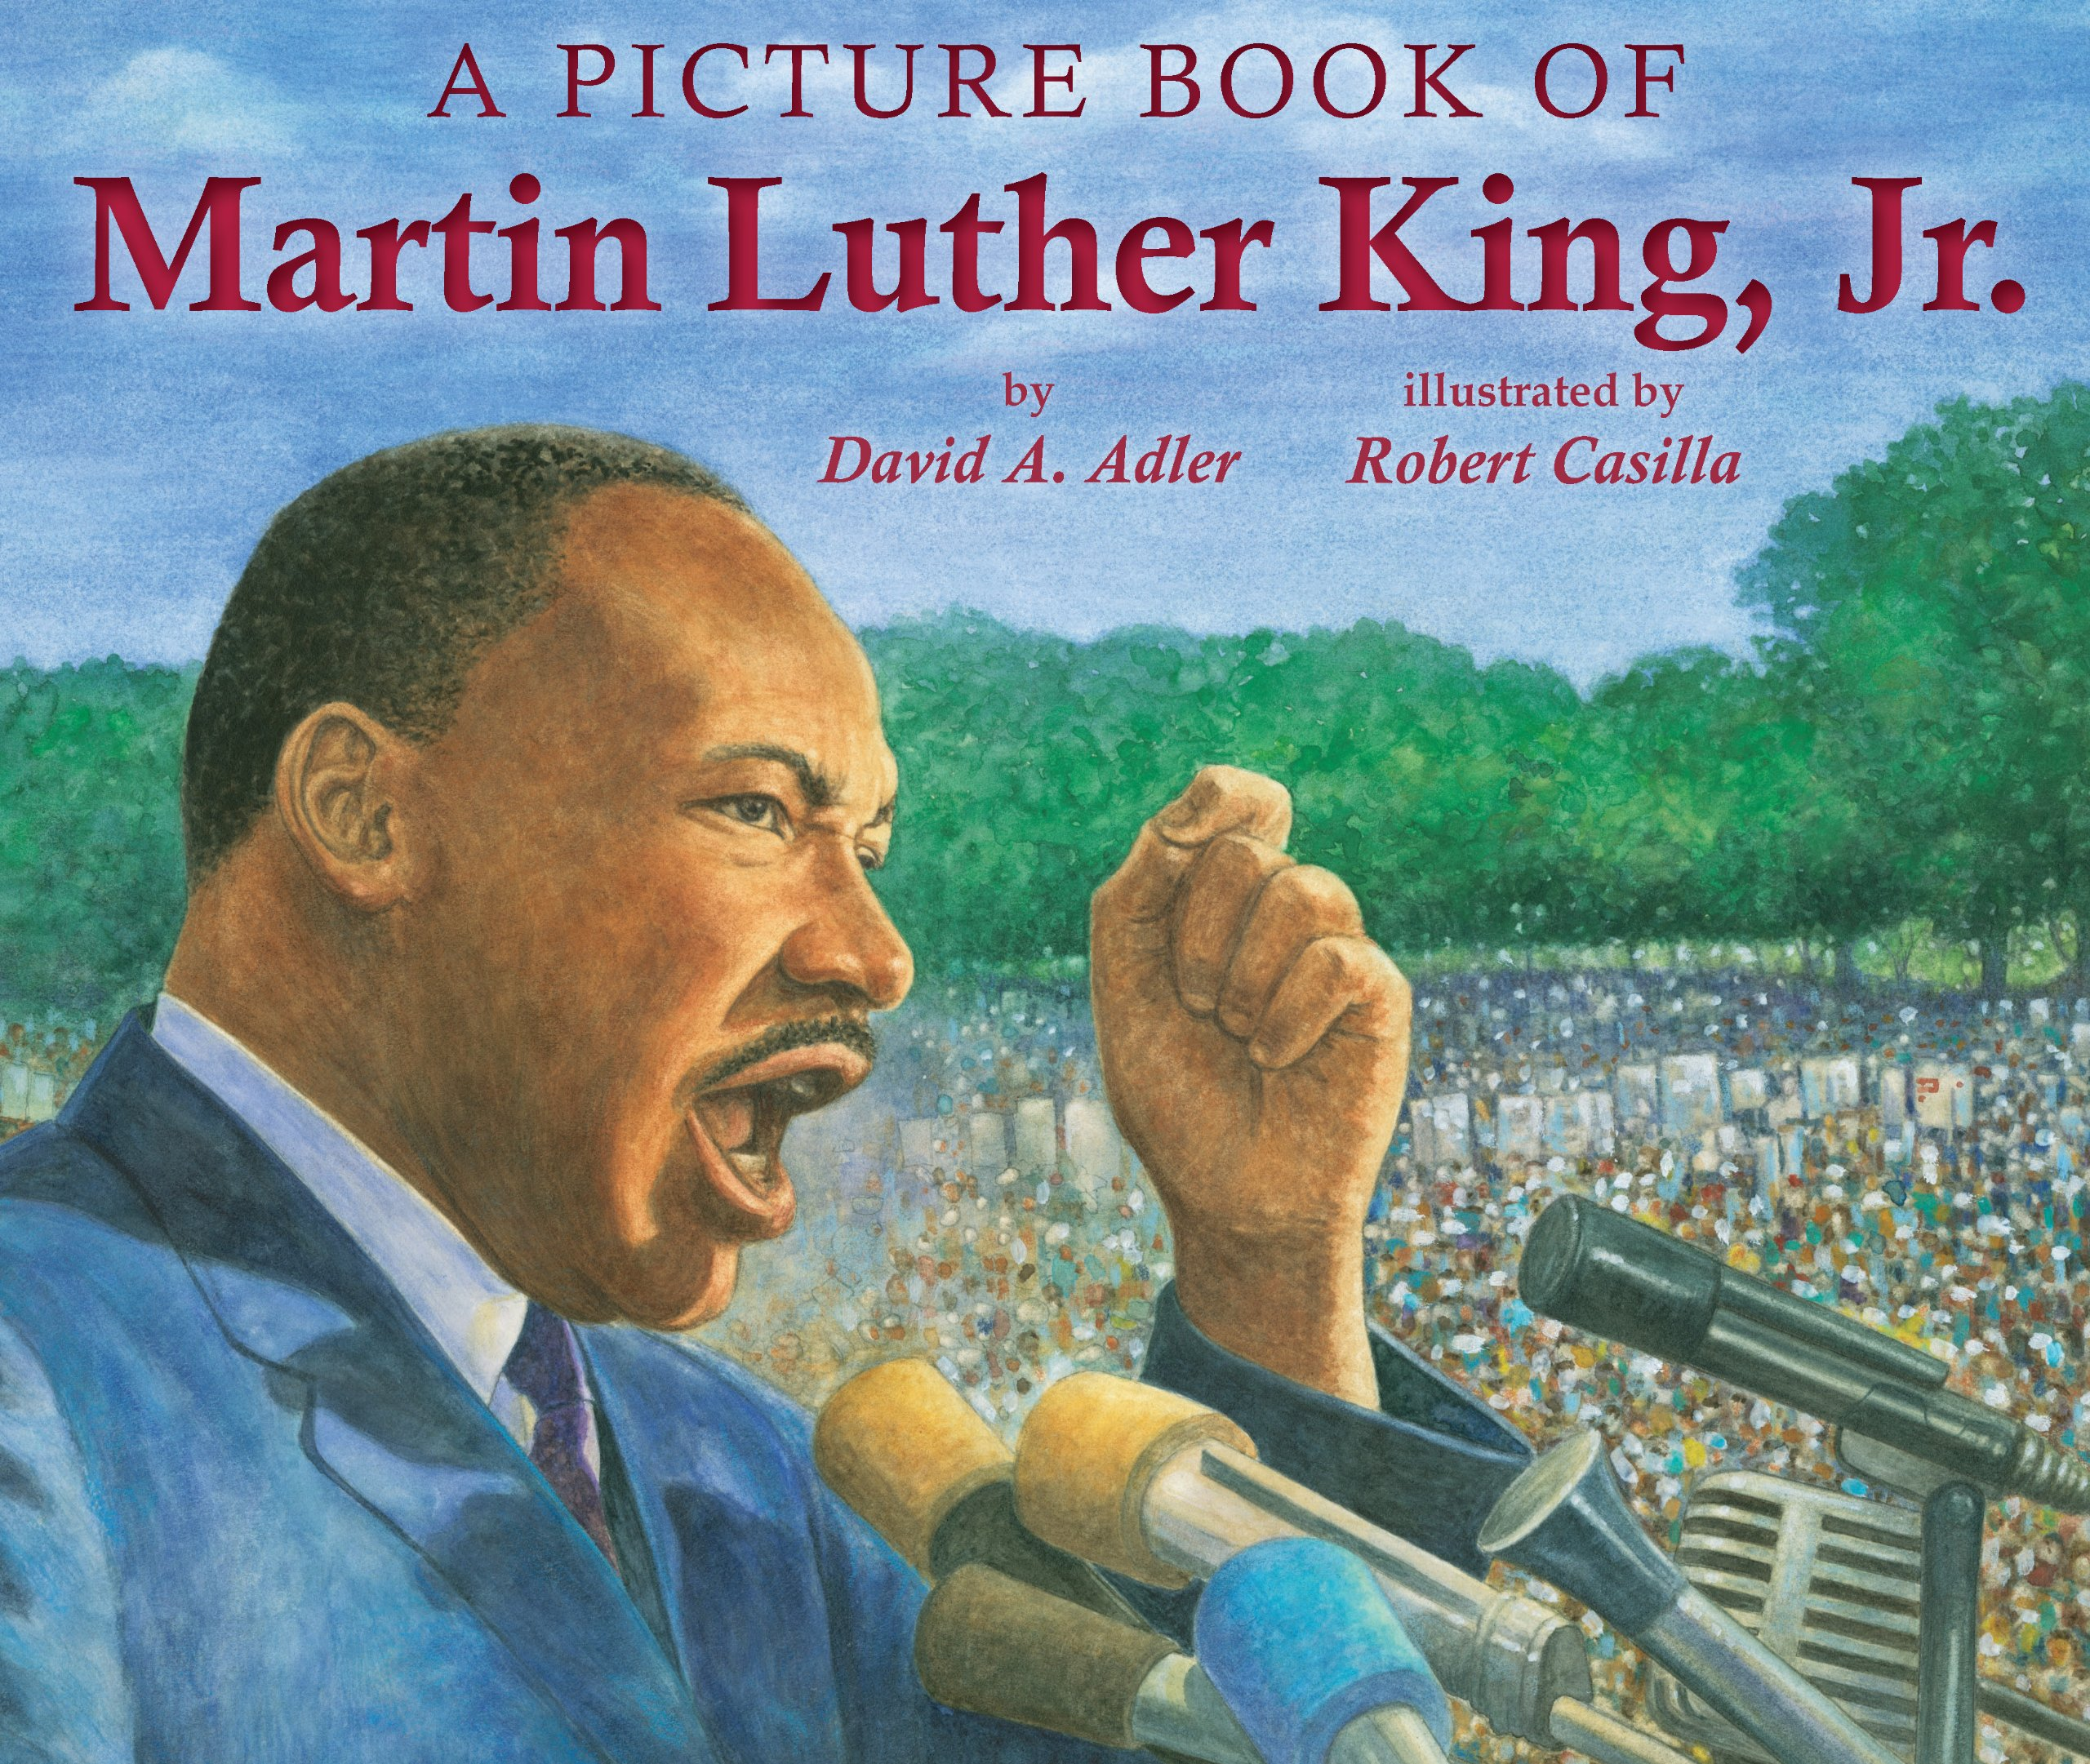 Celebrate The Contributions Of Martin Luther King Jr